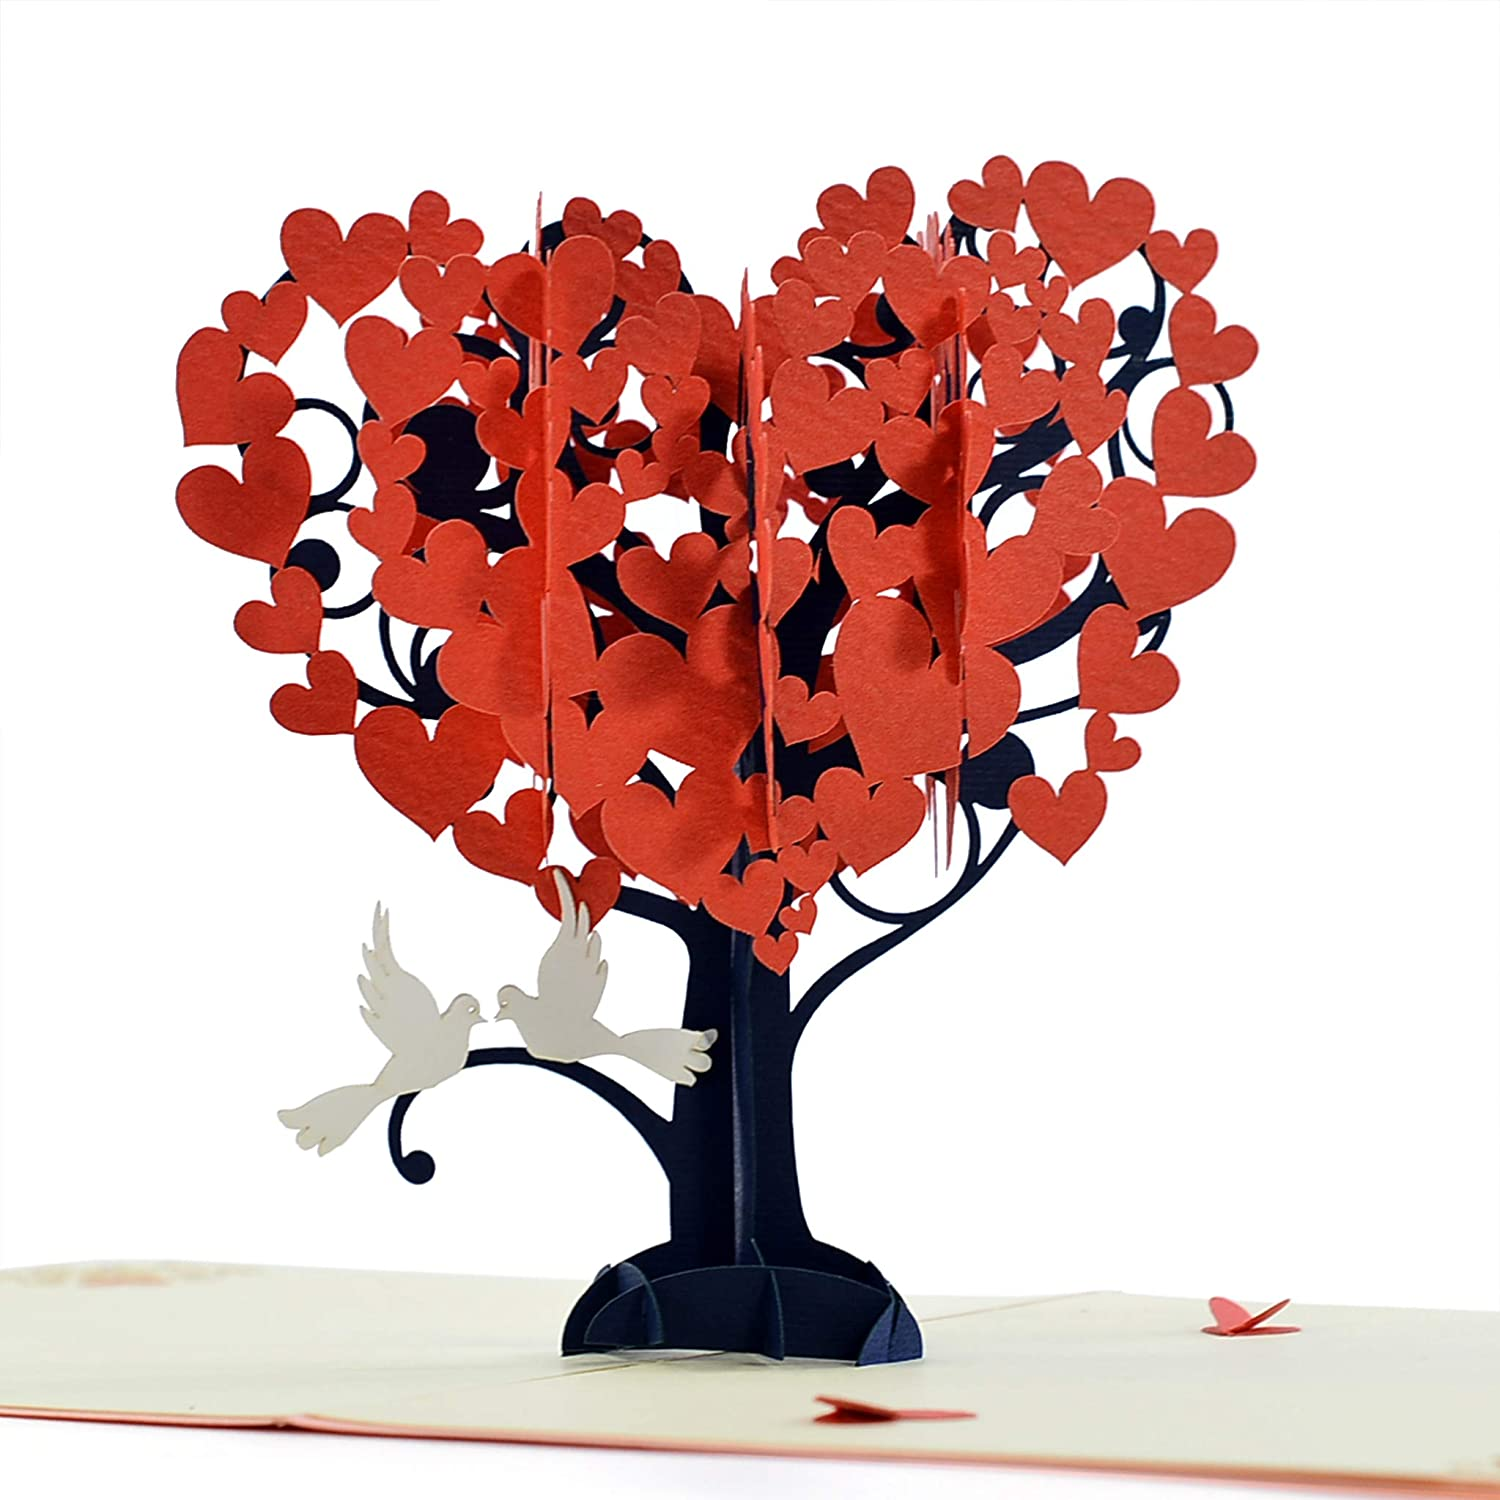 Cutepopup Love Pop Up Cards With Unique Loving Birds Heart Tree Design Sophisticated Details Come In Shining Envelope The Perfect Handmade Gifts For Your Lover In Valentine Or Love Anniversaries Amazon In